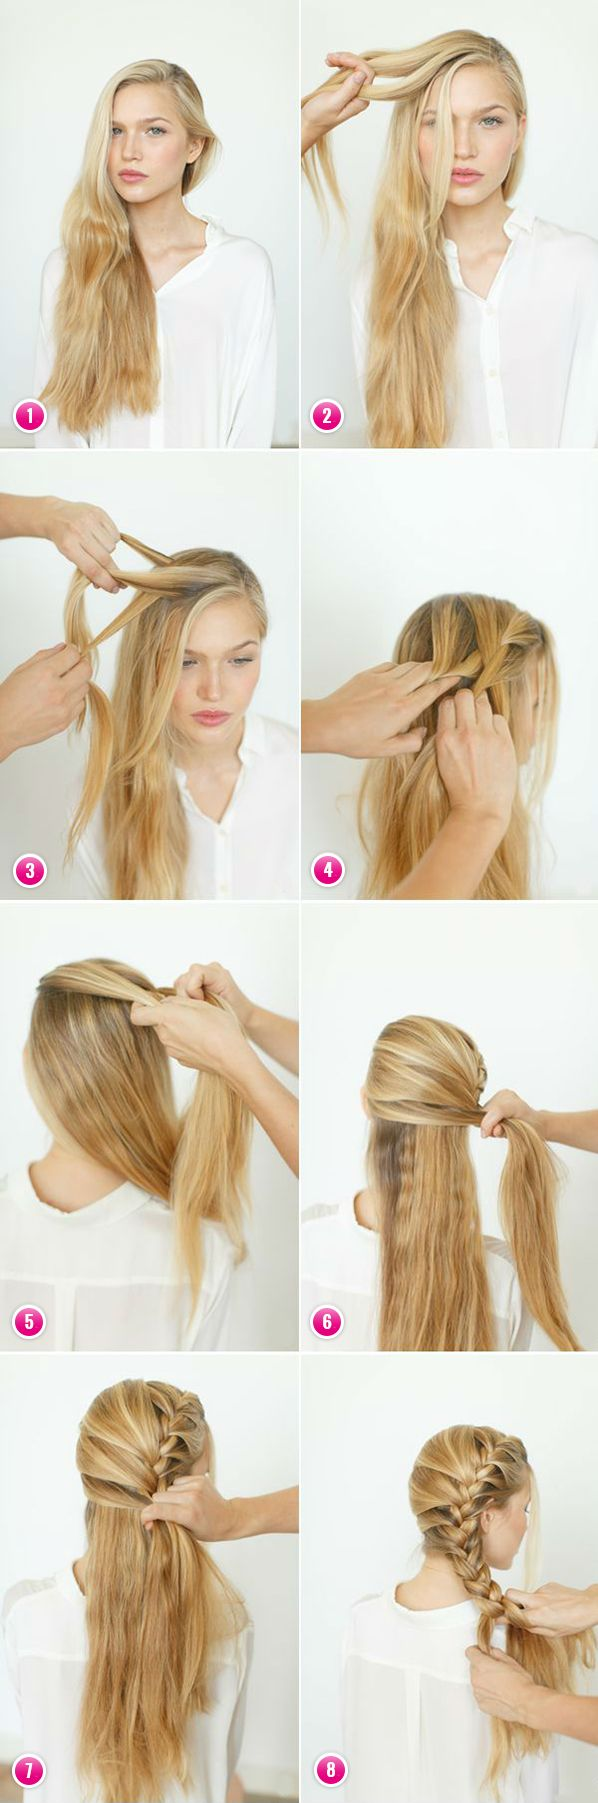 262 best Easy hairstyles images on Pinterest | Easy hairstyle, Make ...